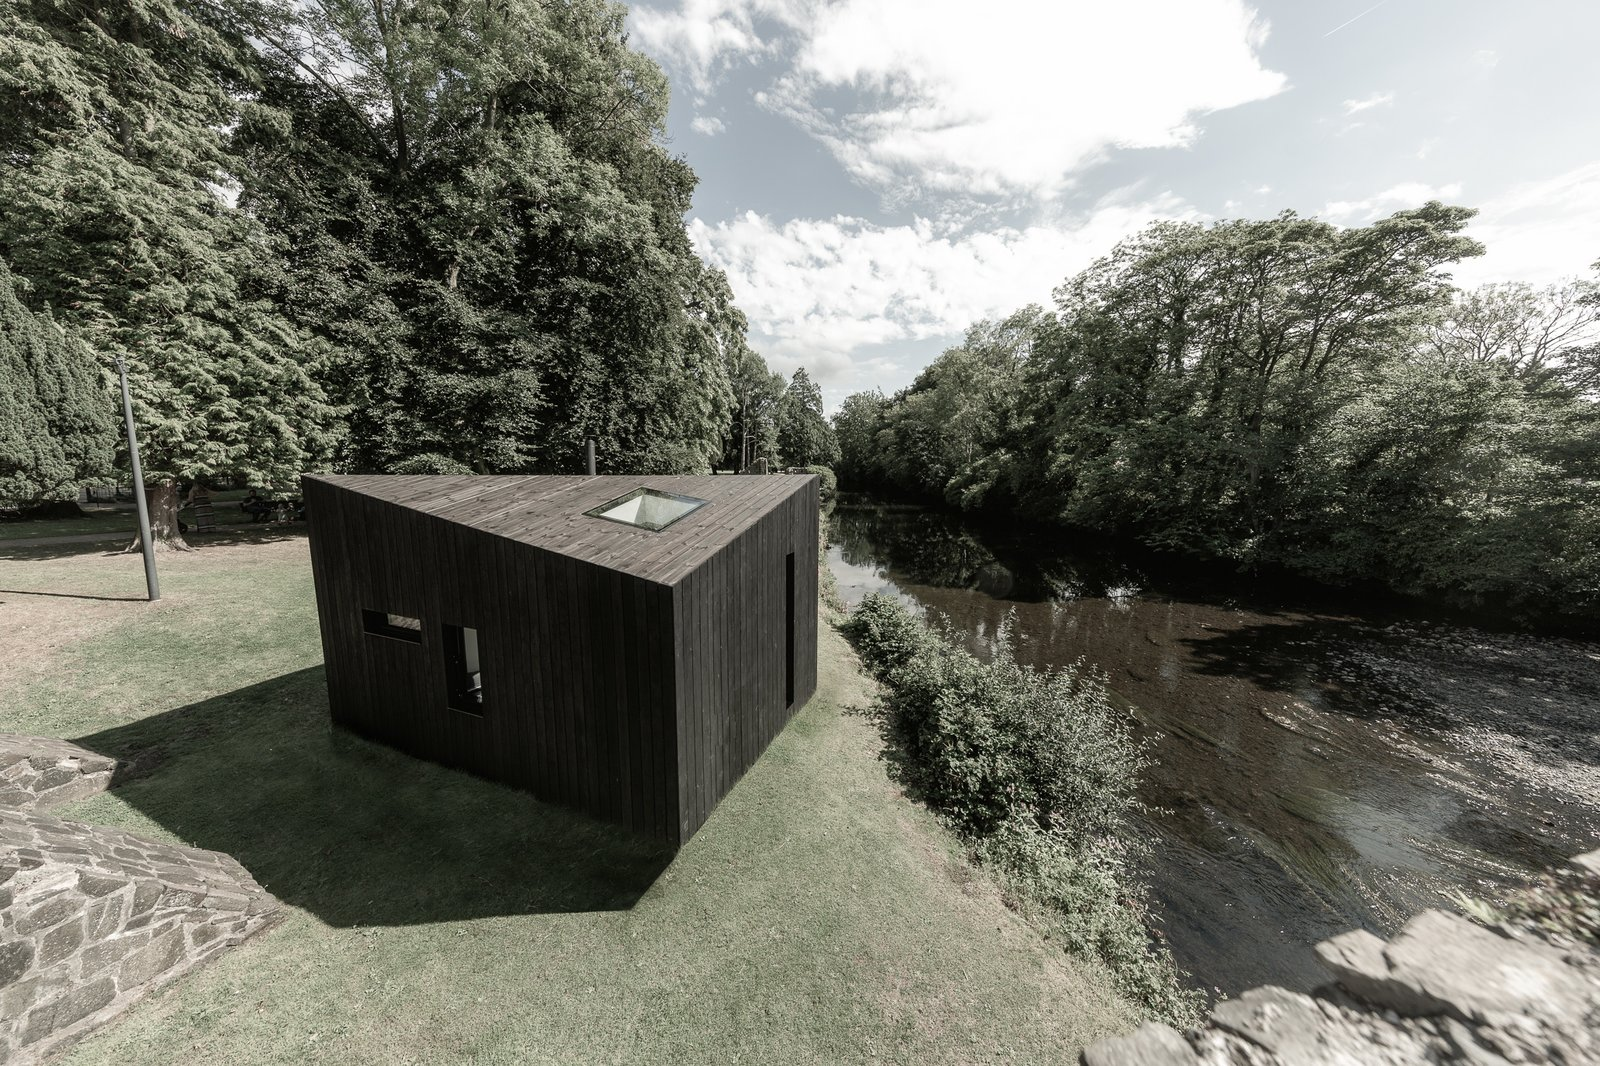 """Koto prefabs can be reconfigured to accommodate client needs and the constraints of the site. """"They are designed to last a lifetime and can even be relocated to a totally different site years later,"""